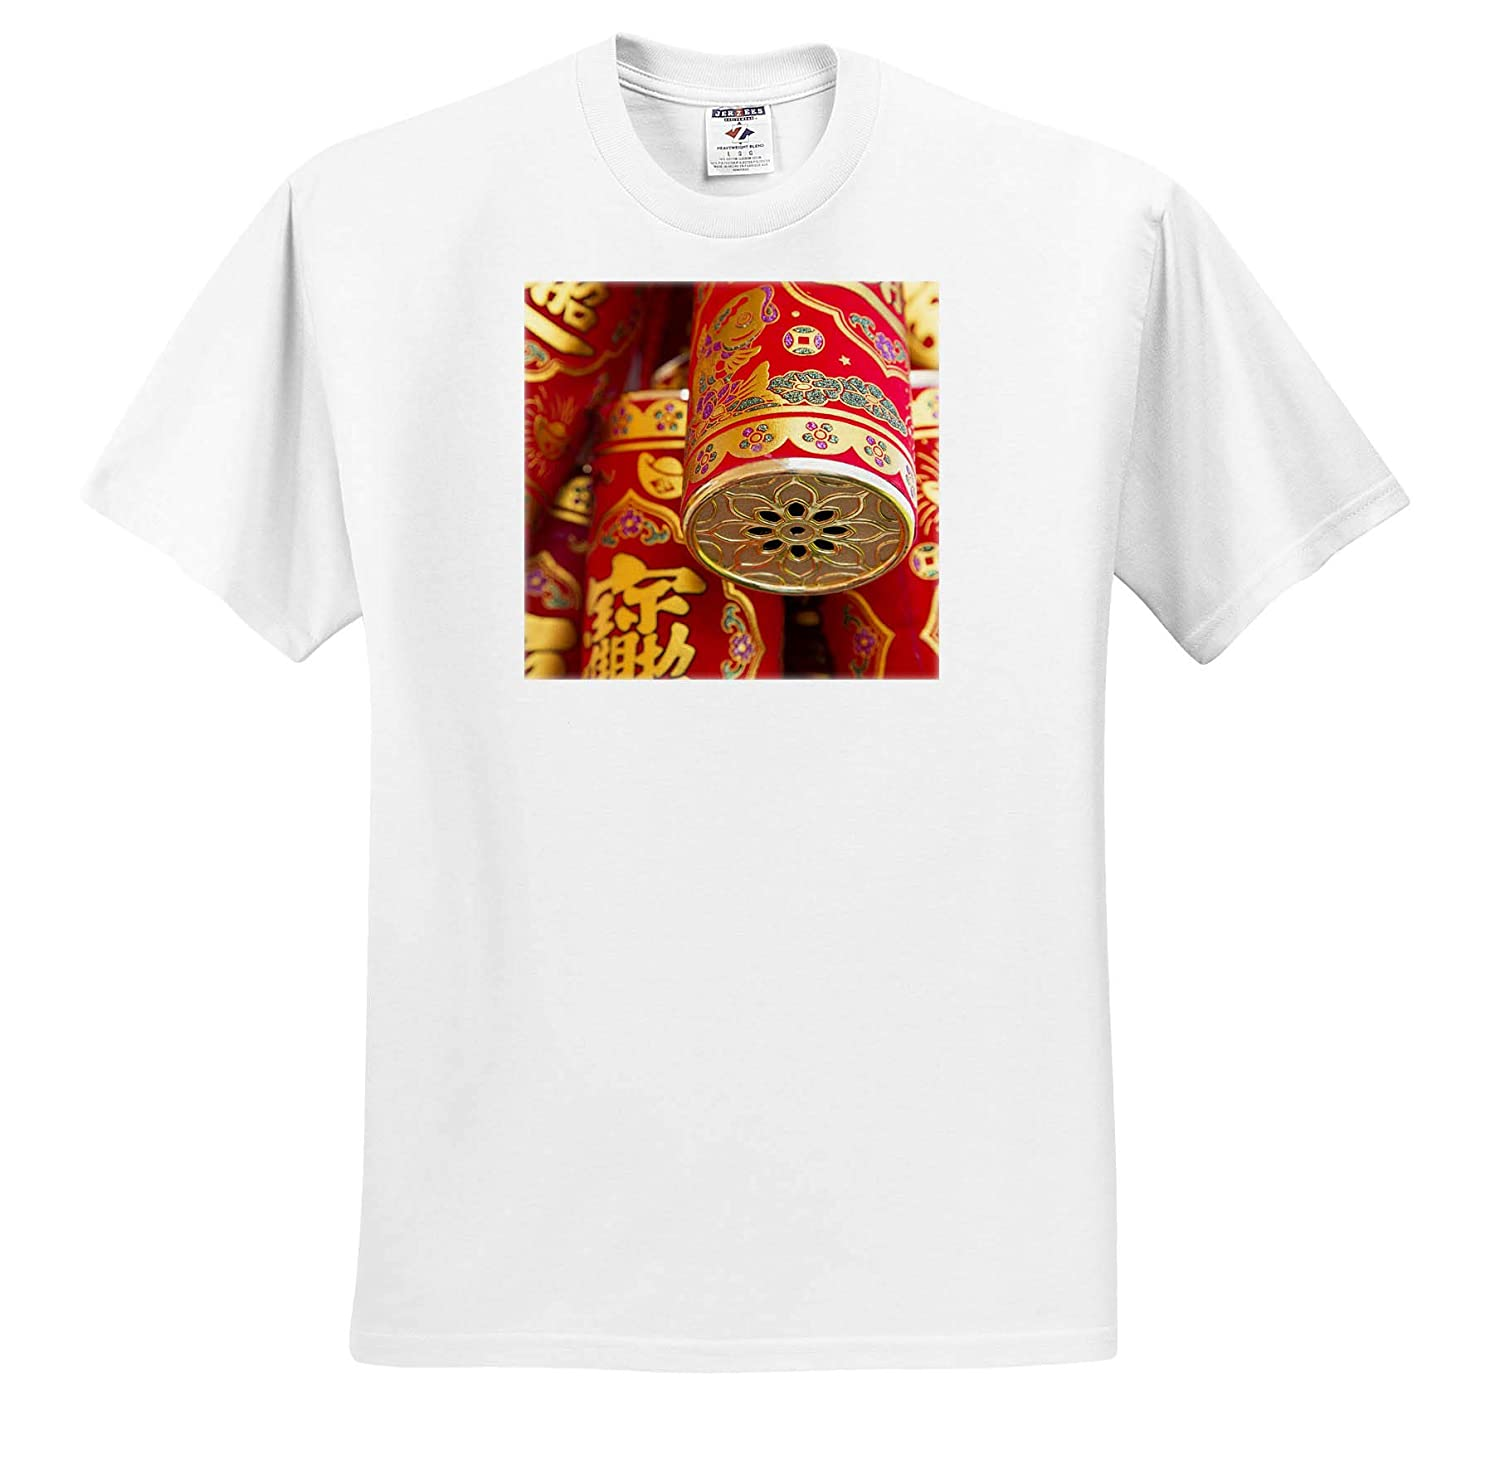 3dRose Danita Delimont ts/_314544 Holidays Traditional Chinese firecrackers - Adult T-Shirt XL